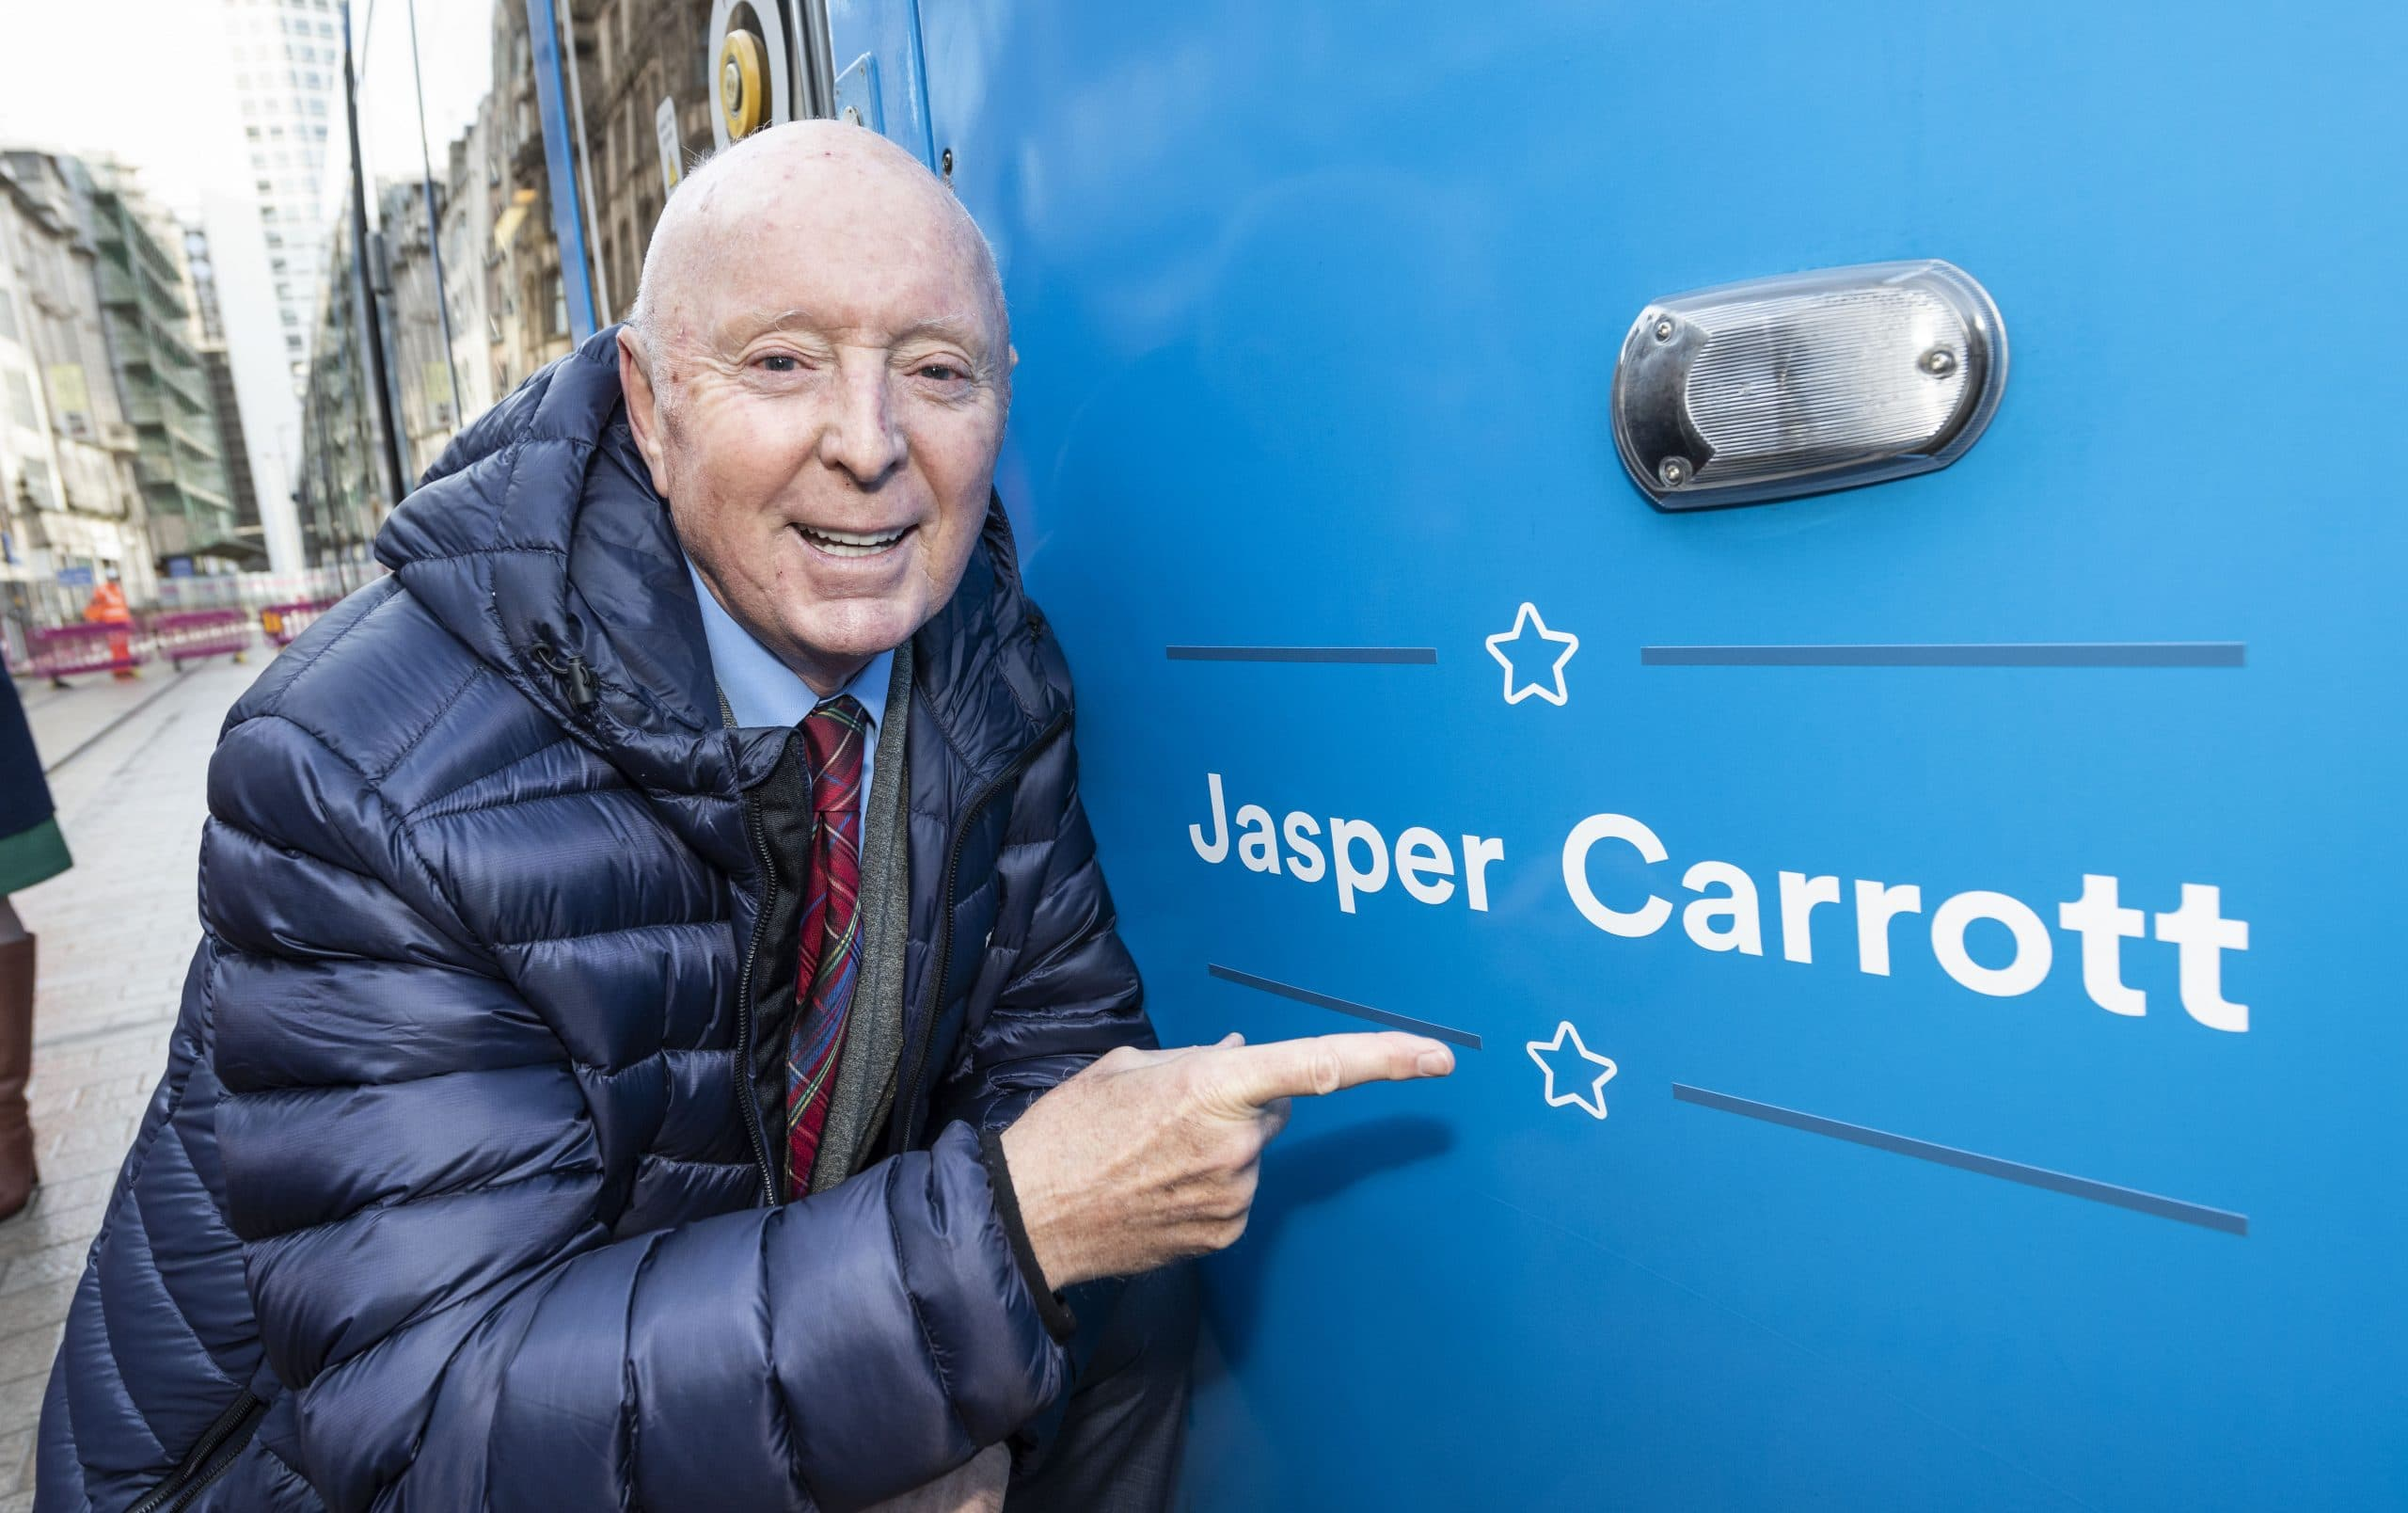 Jasper Carrott unveils tram named in his honour as Birmingham Westside extension moves ever closer to opening